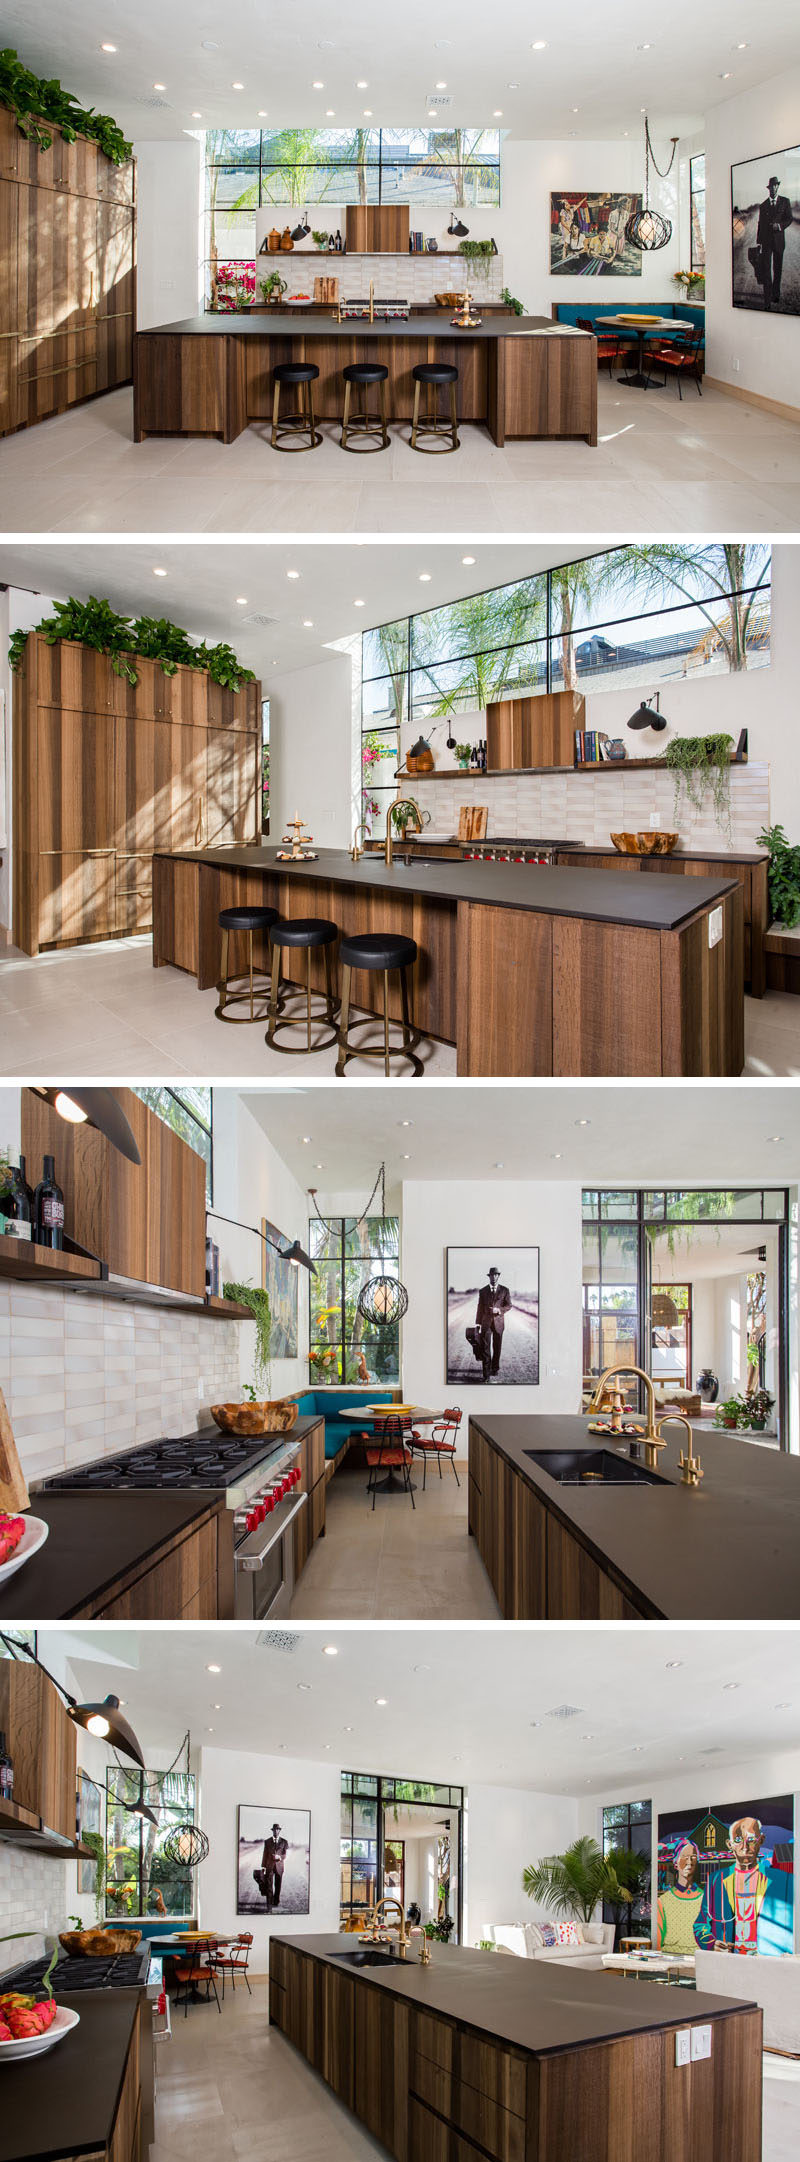 This open and airy kitchen has a small breakfast nook and an island large enough to have space for three seats. Even though the kitchen is wood, the kitchen doesn't feel closed-in due to the bright white walls and placement of the windows.